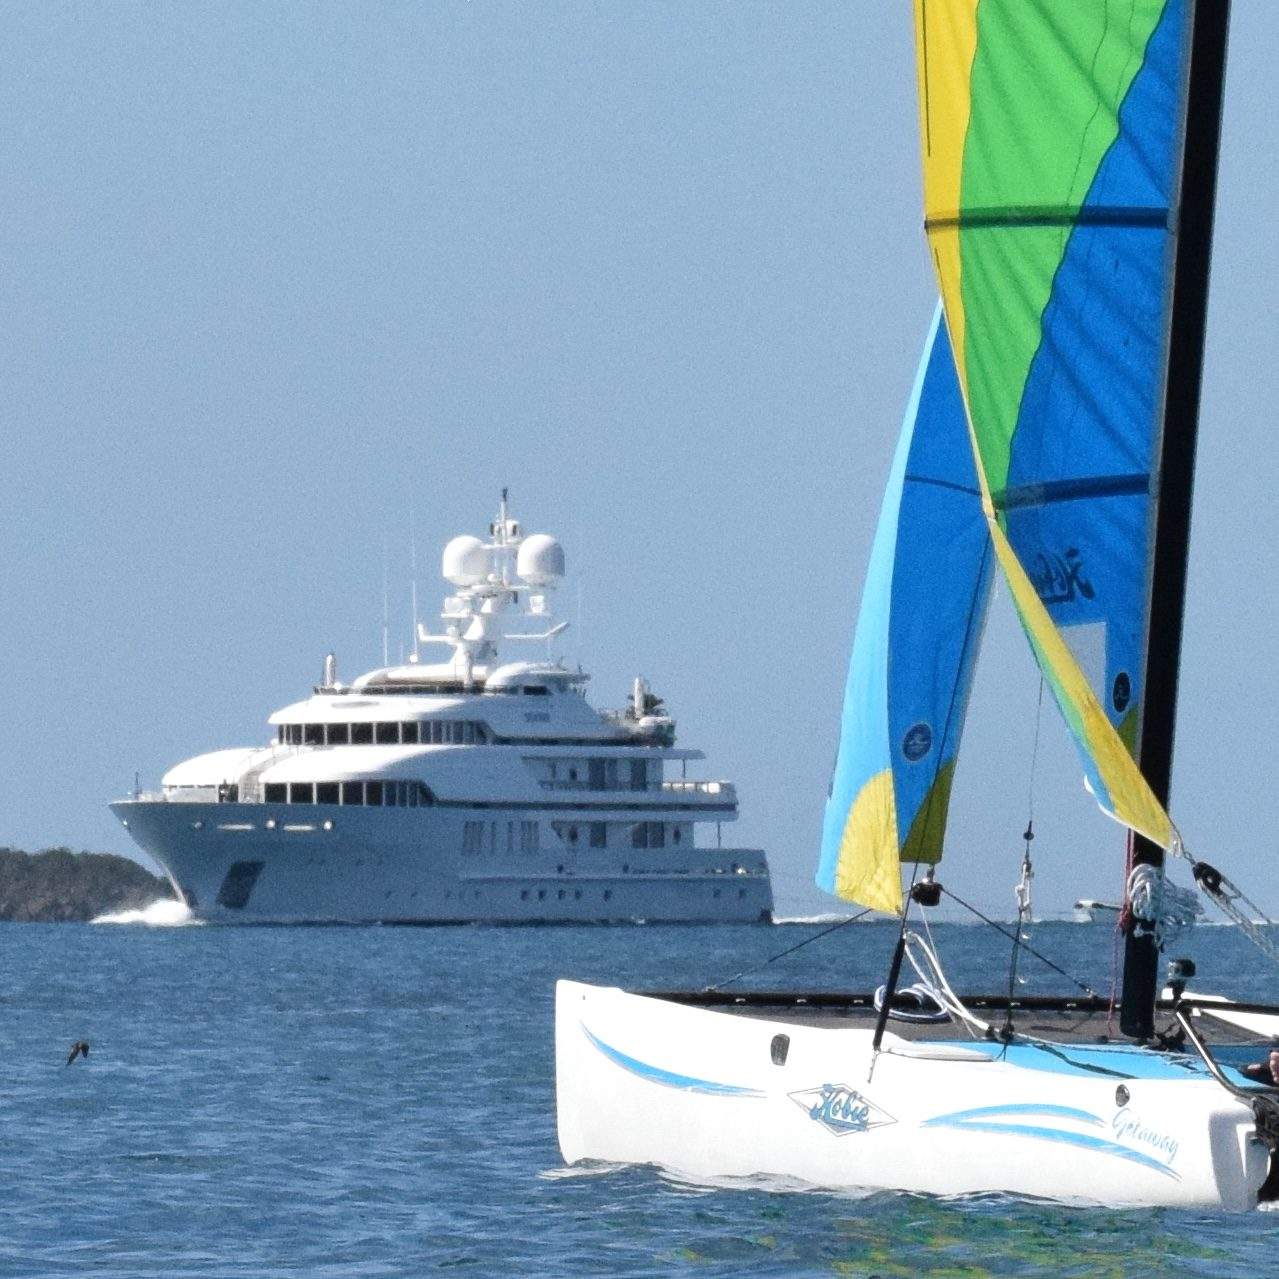 Exclusive BVI Getaways